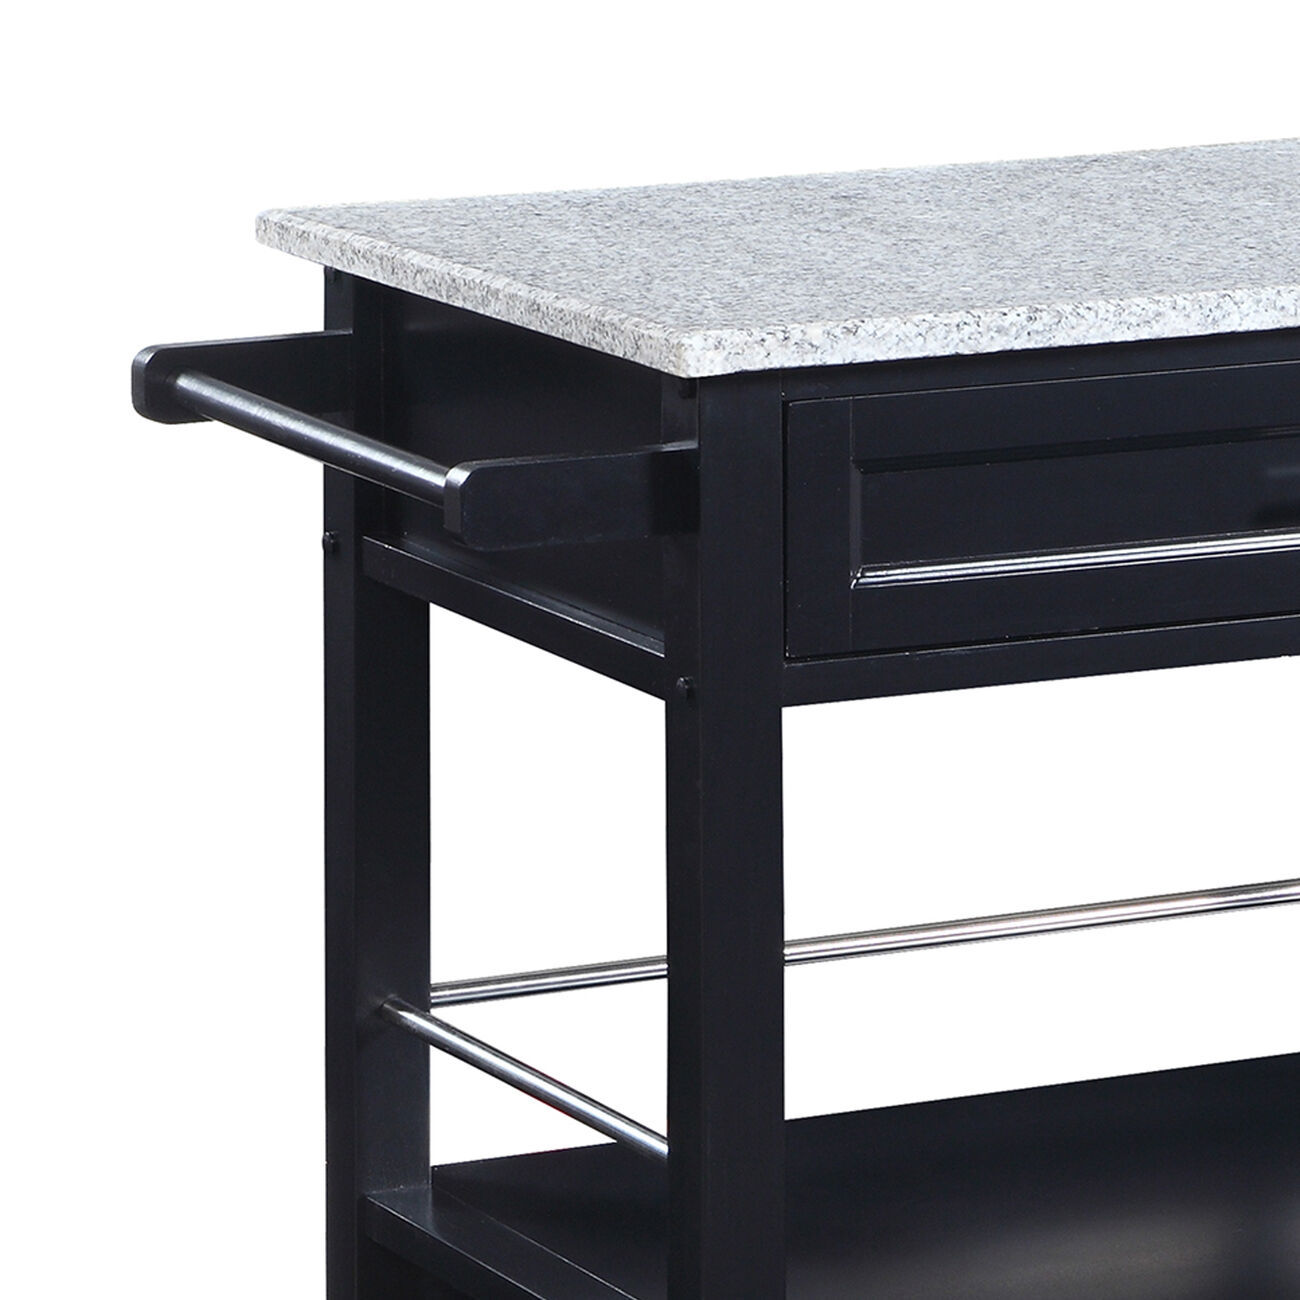 Spacious Wooden Kitchen Cart with Granite Inlaid Top, Black and Gray